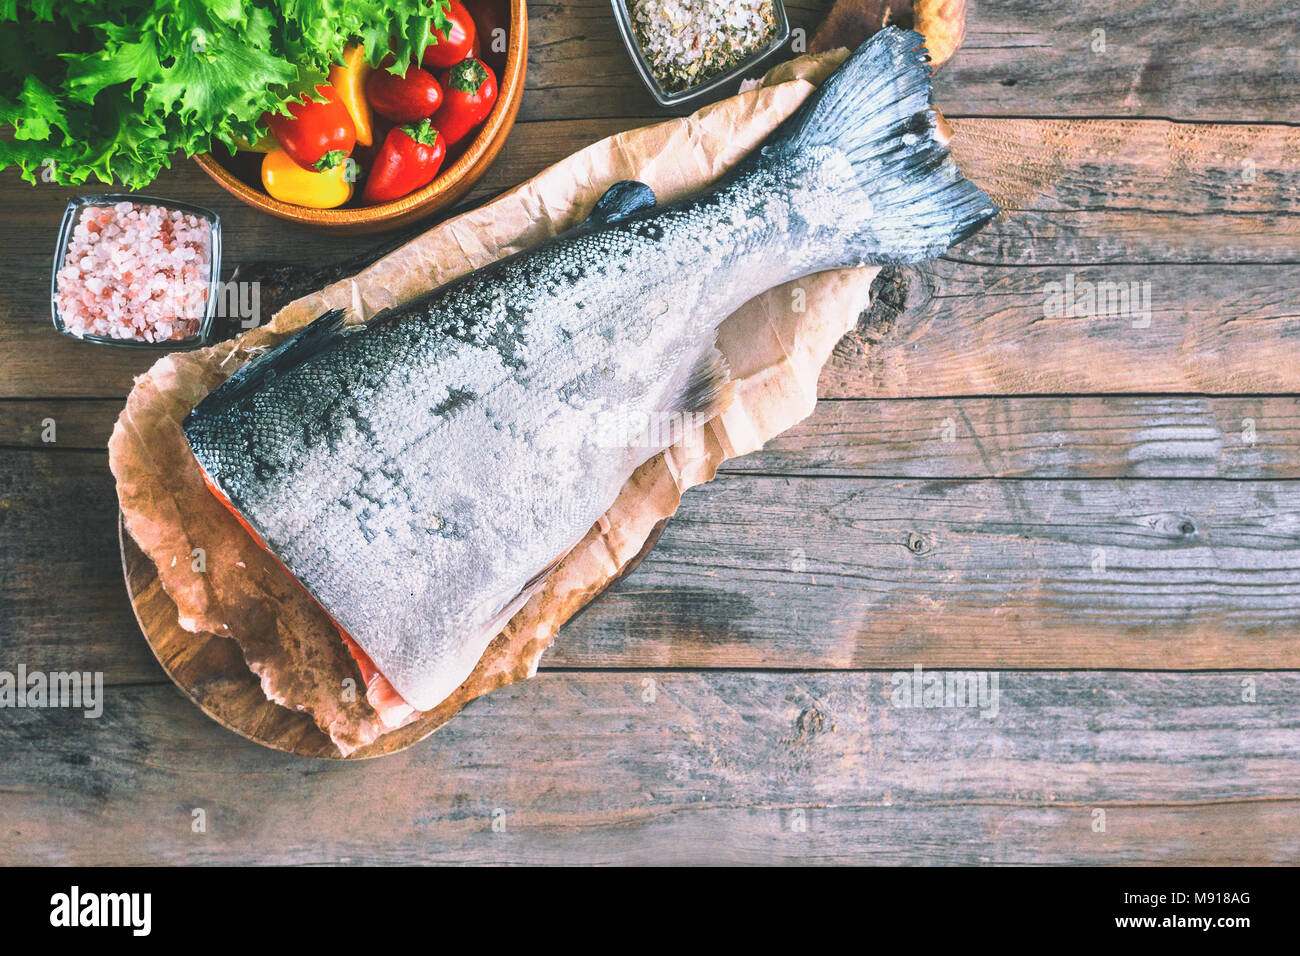 A large piece of salmon lying on a wooden table for cooking. Food anti-aging body. Copy the space. - Stock Image